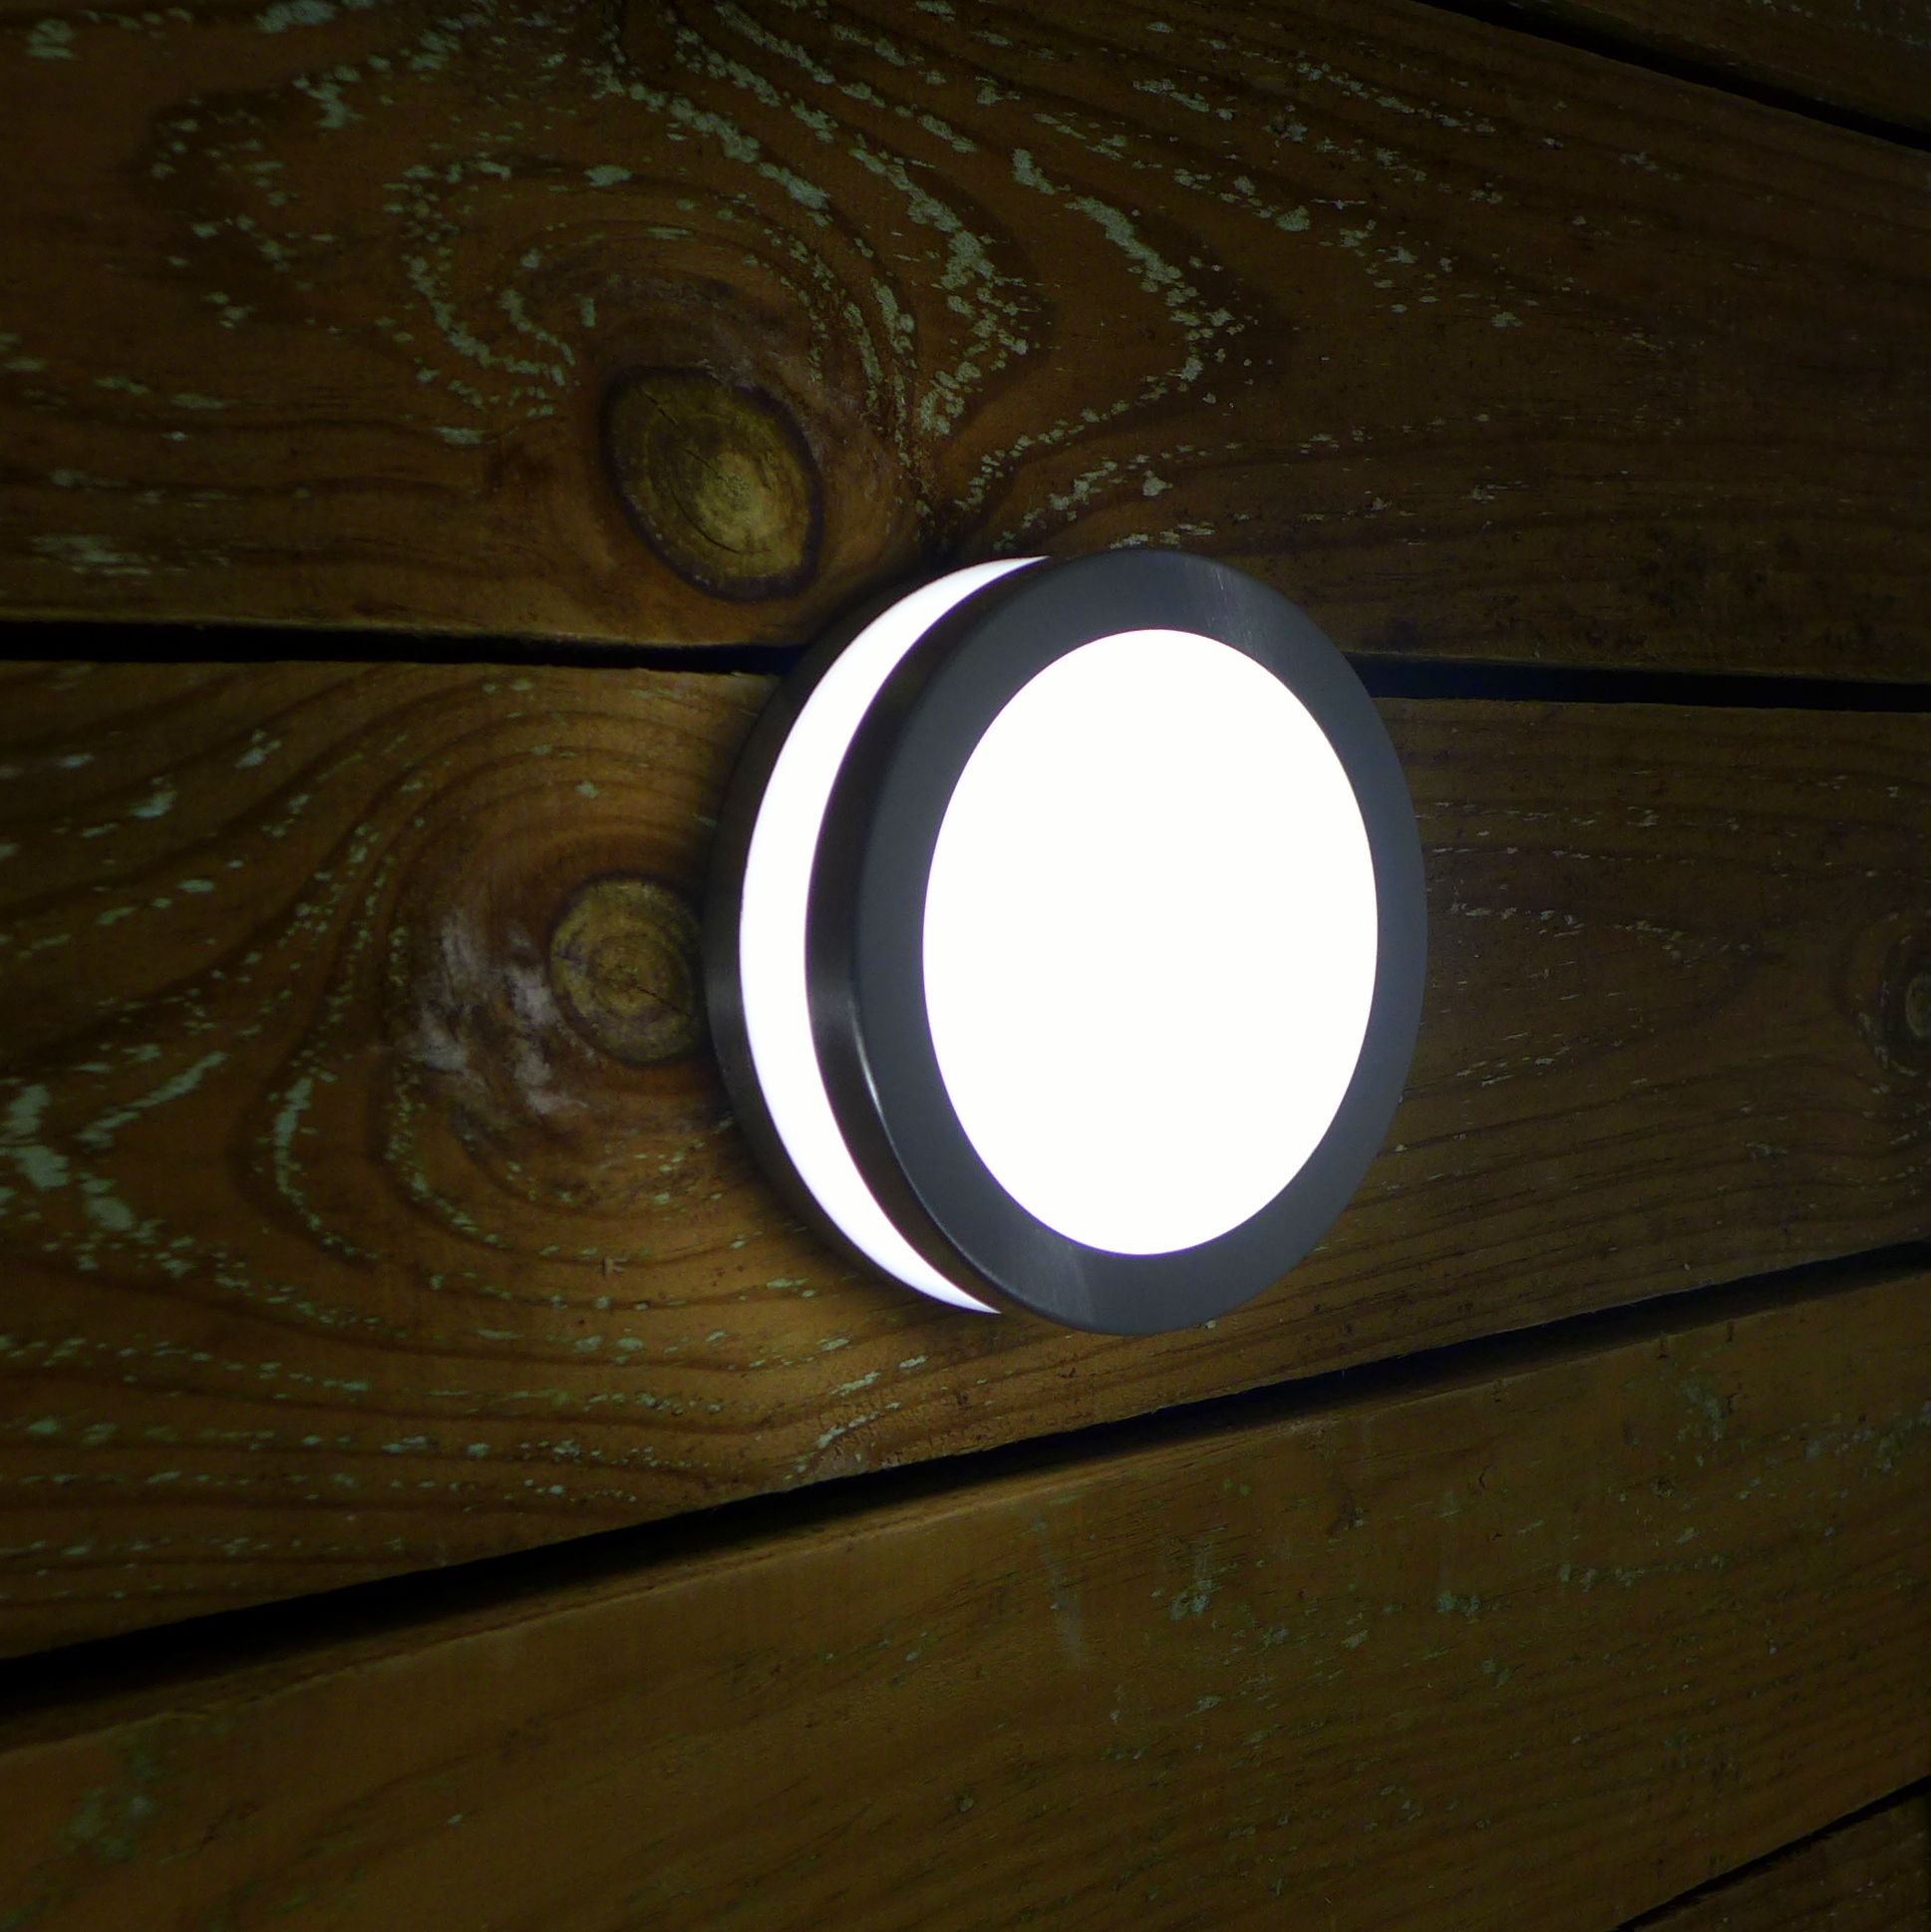 Low energy modern round exterior wall light opal front and opal front and perimeter diffuser provides projected light along with a halo effect wall light stainless steel construction with a polycarbonate opal aloadofball Images